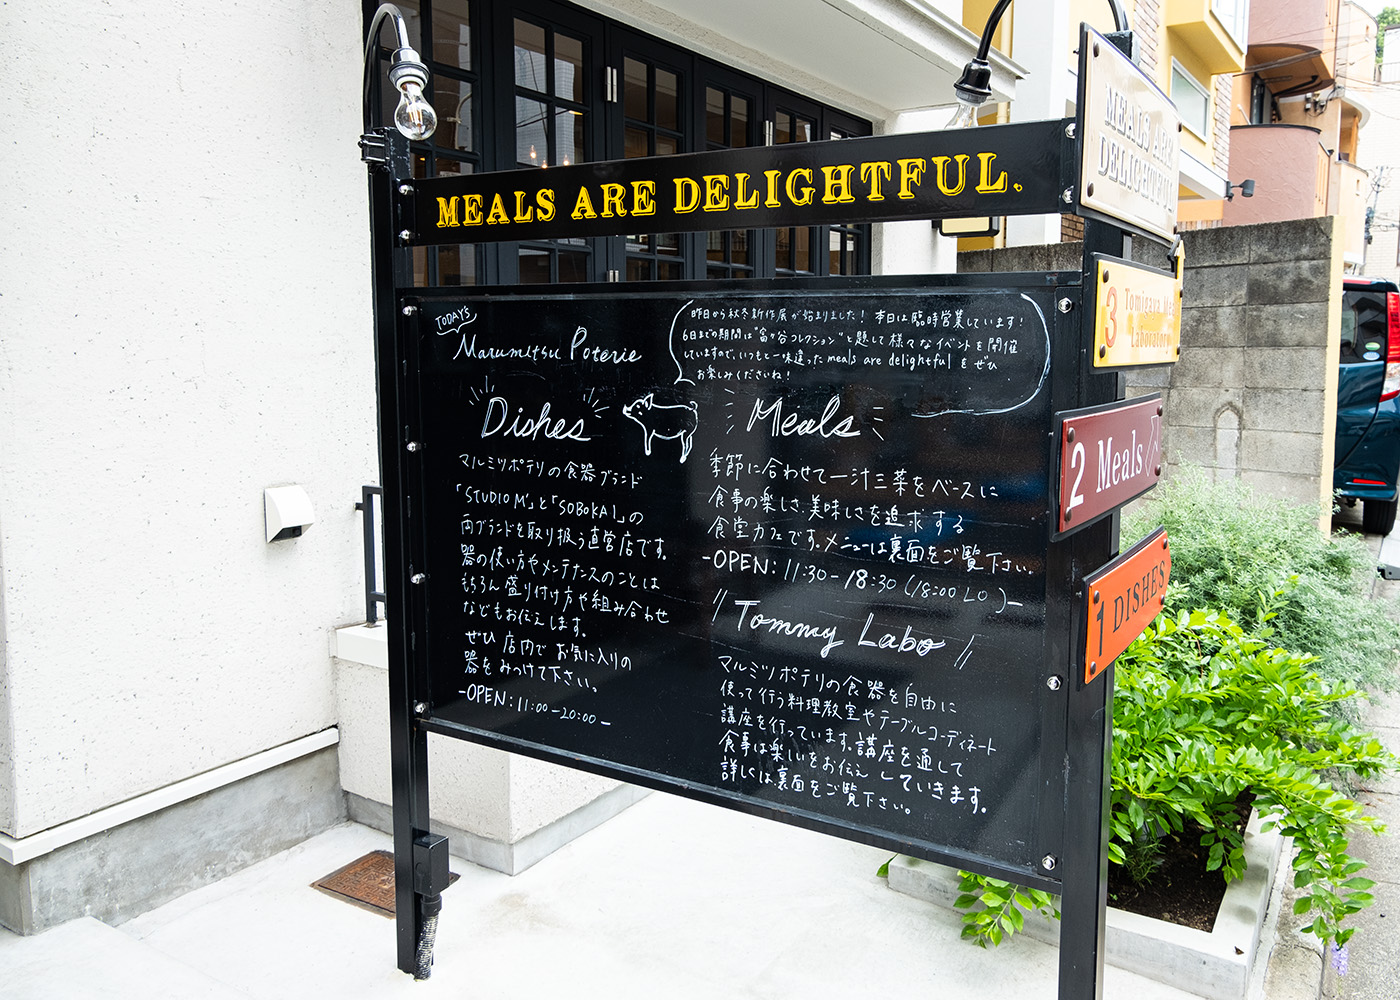 MEALS ARE DELIGHTFUL看板